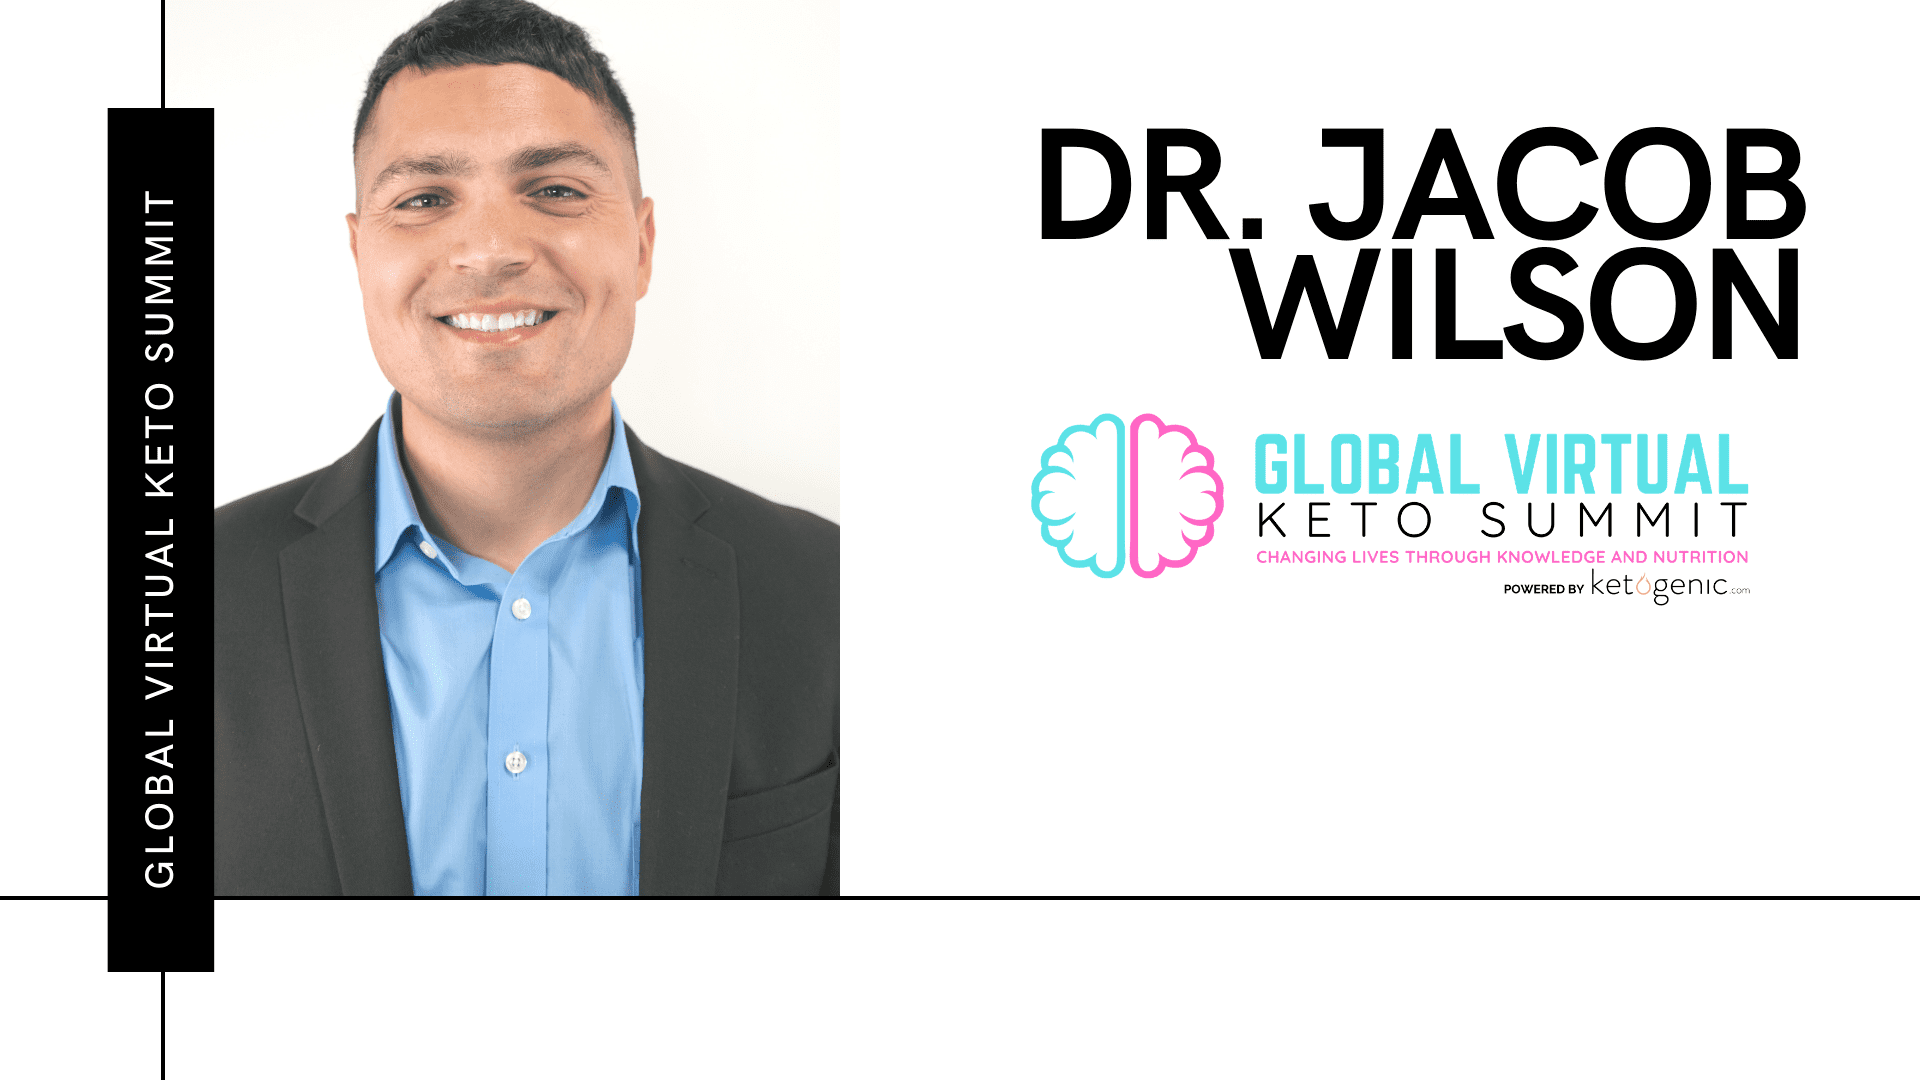 Dr. Jacob Wilson: Ketogenic dieting and Body Composition